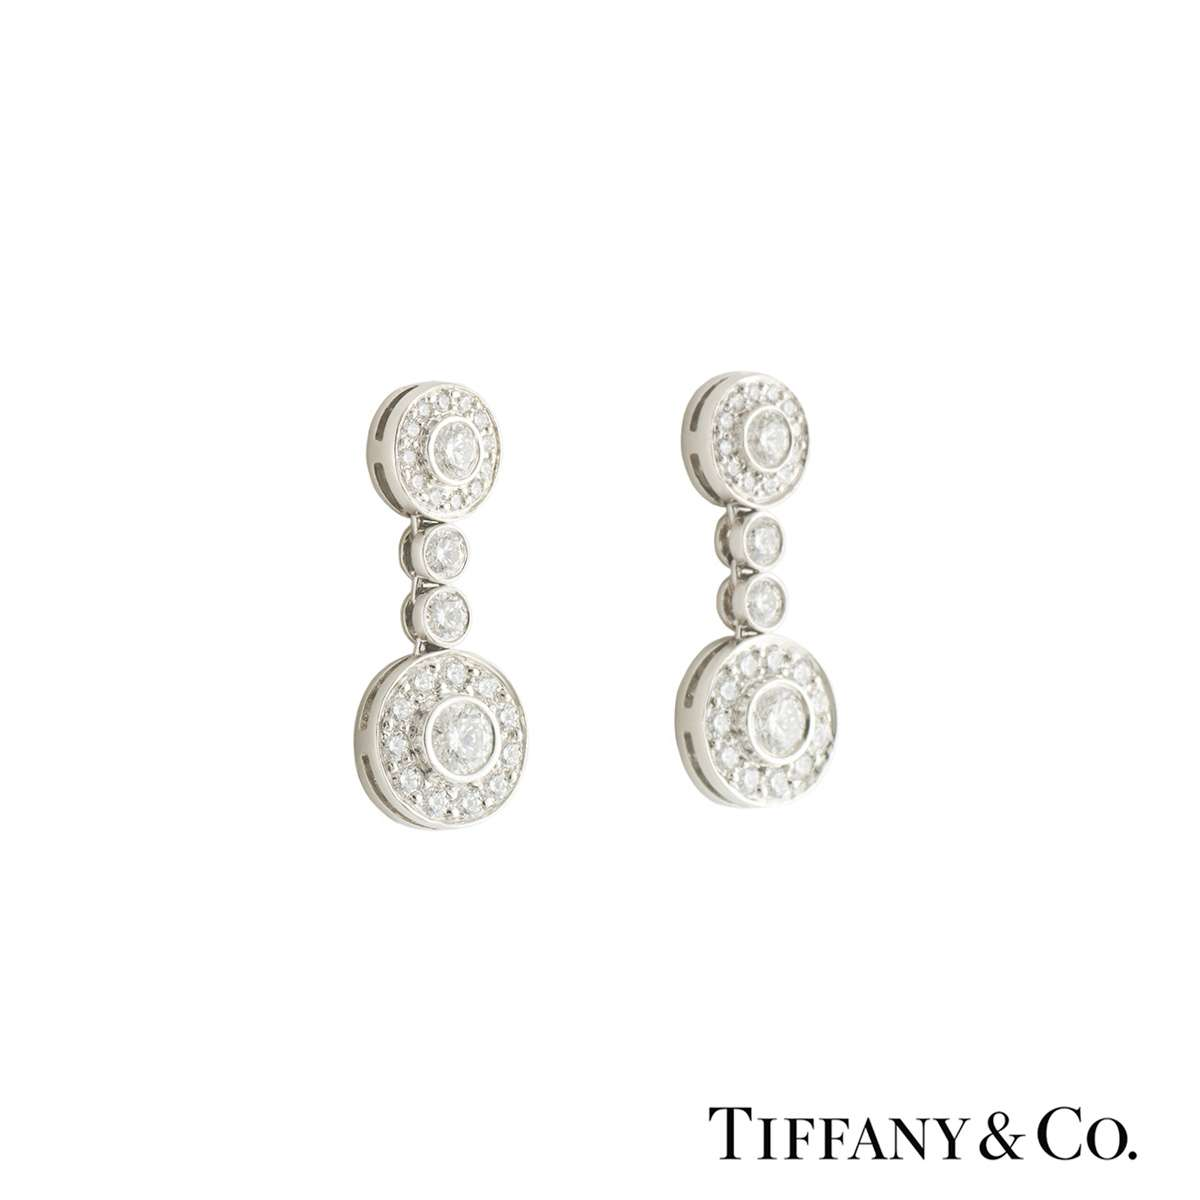 Tiffany & Co. Platinum Diamond Circlet Earrings 1.18ct G+/VS+